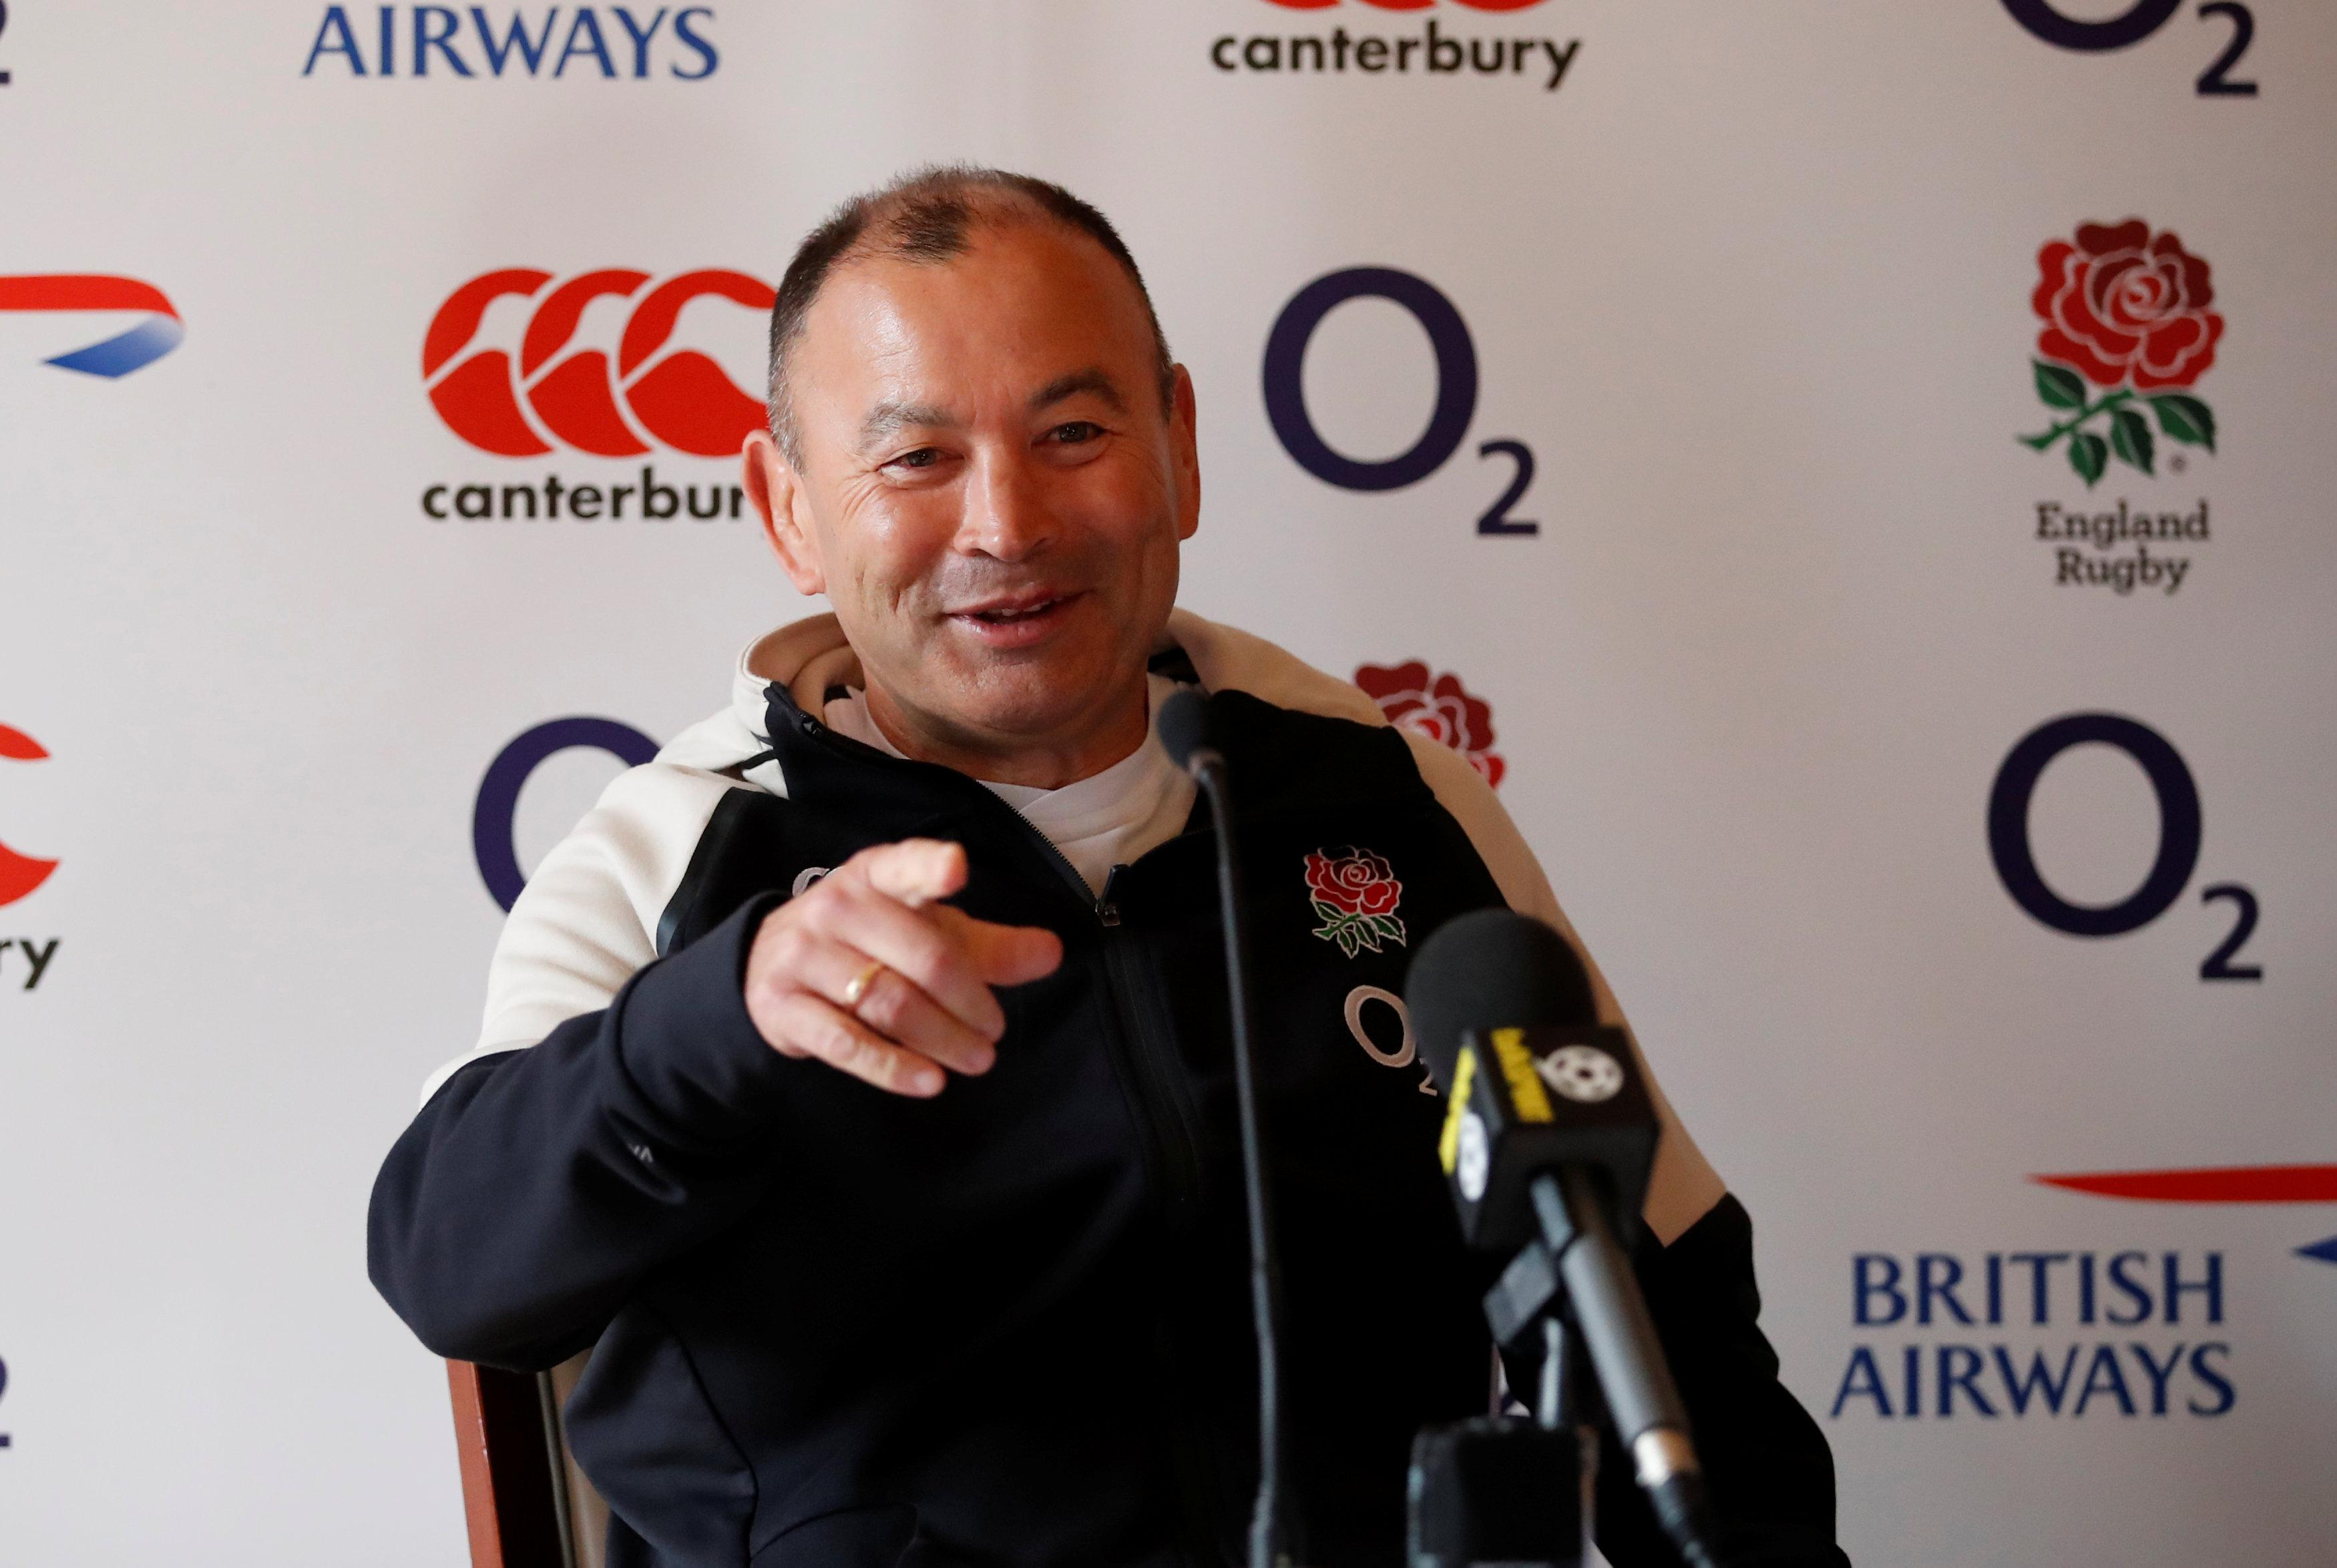 Eddie Jones has joked he wants the Spice Girls to perform during the Haka